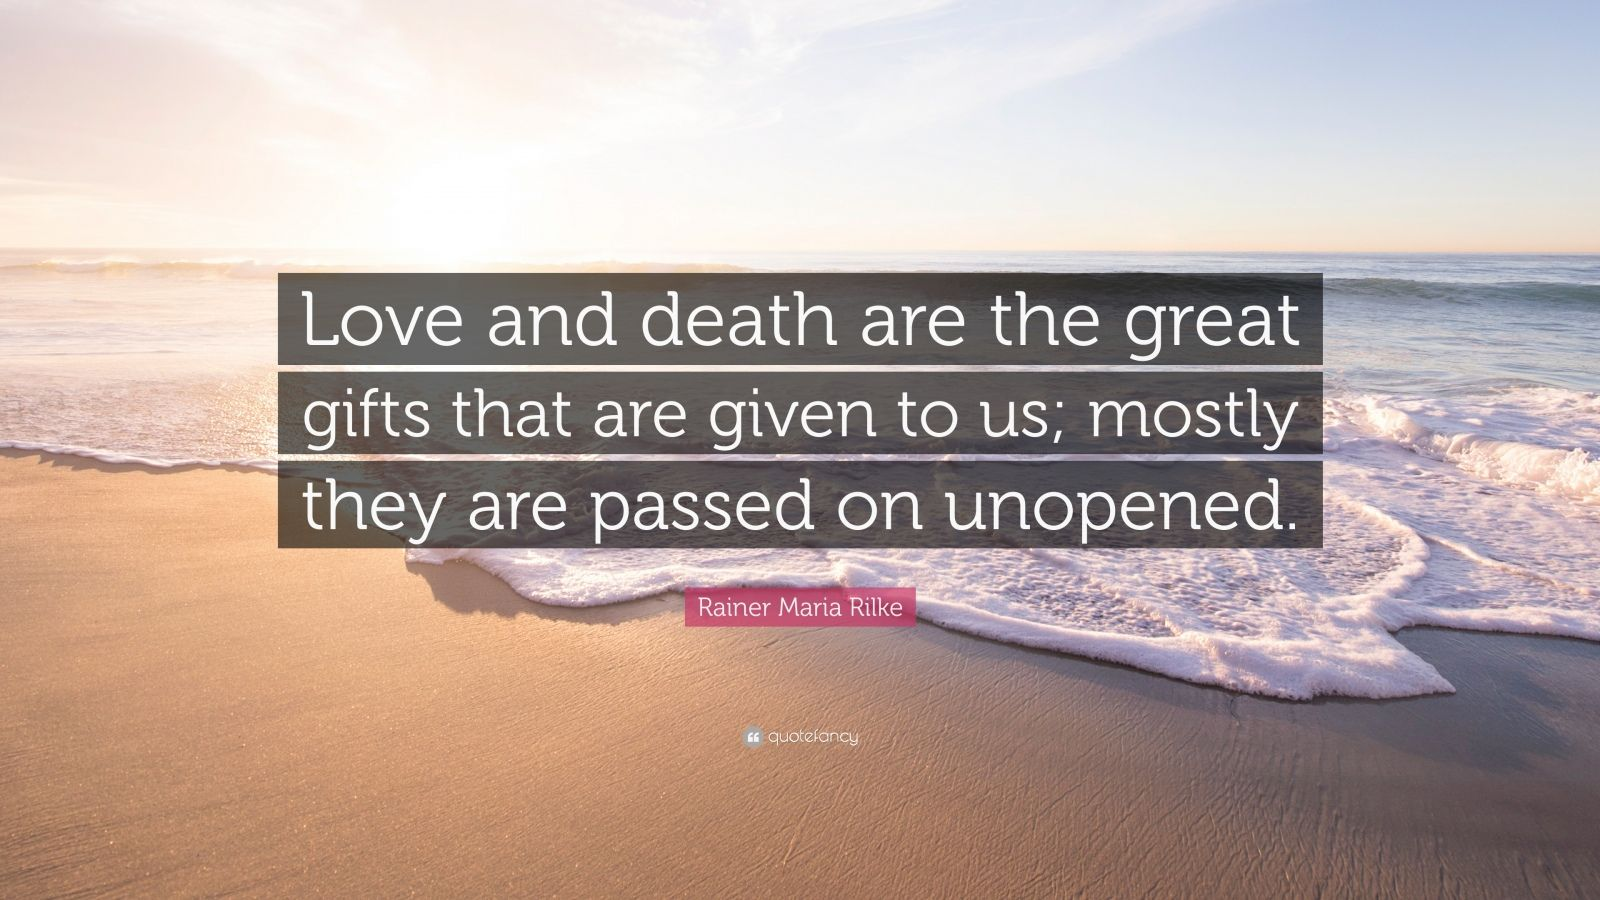 Quotes About Love And Death : Love and death are the great gifts that are given to us; mostly they ...